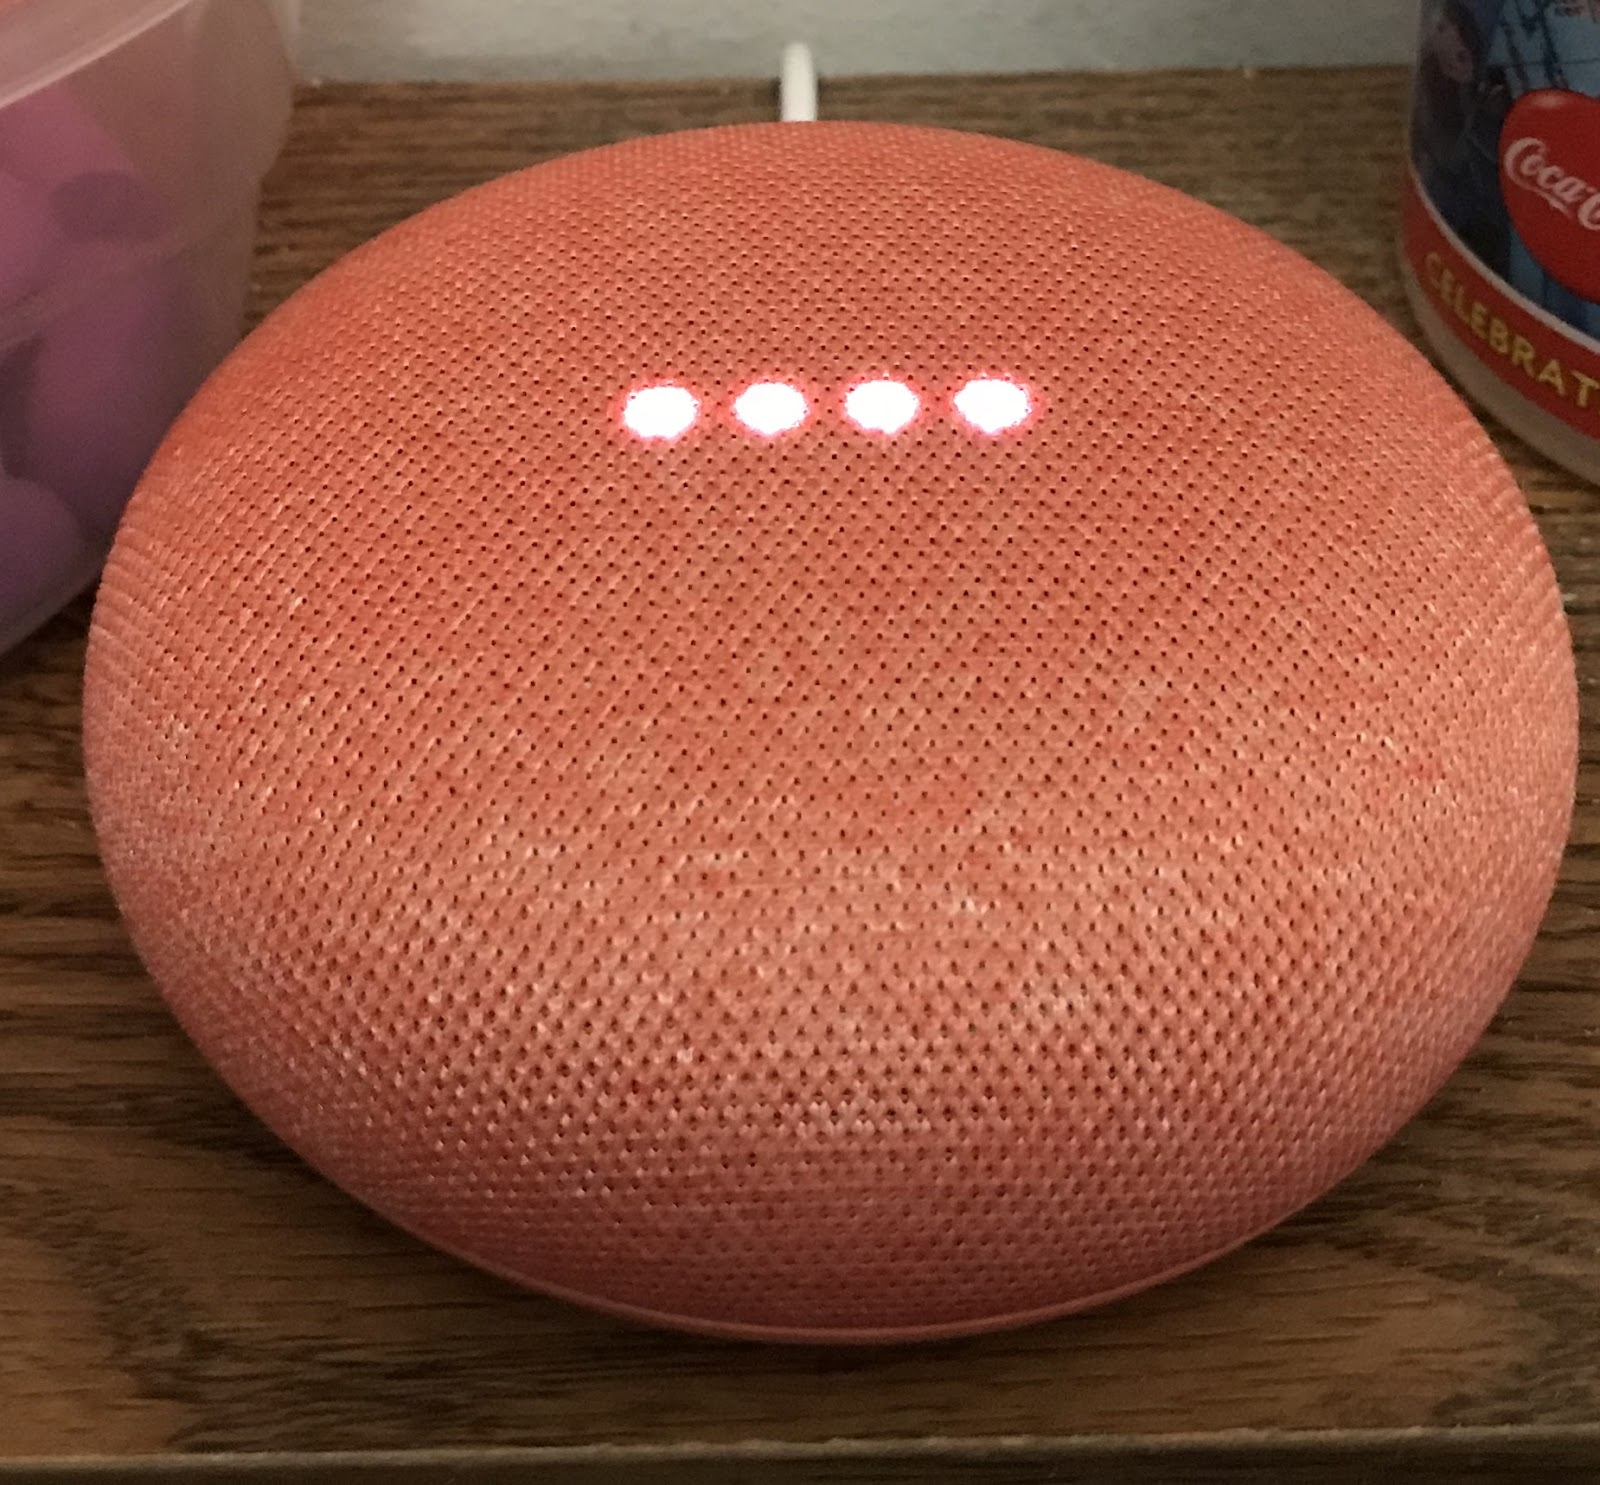 Orange colored Google Home with LED lights glowing in the middle